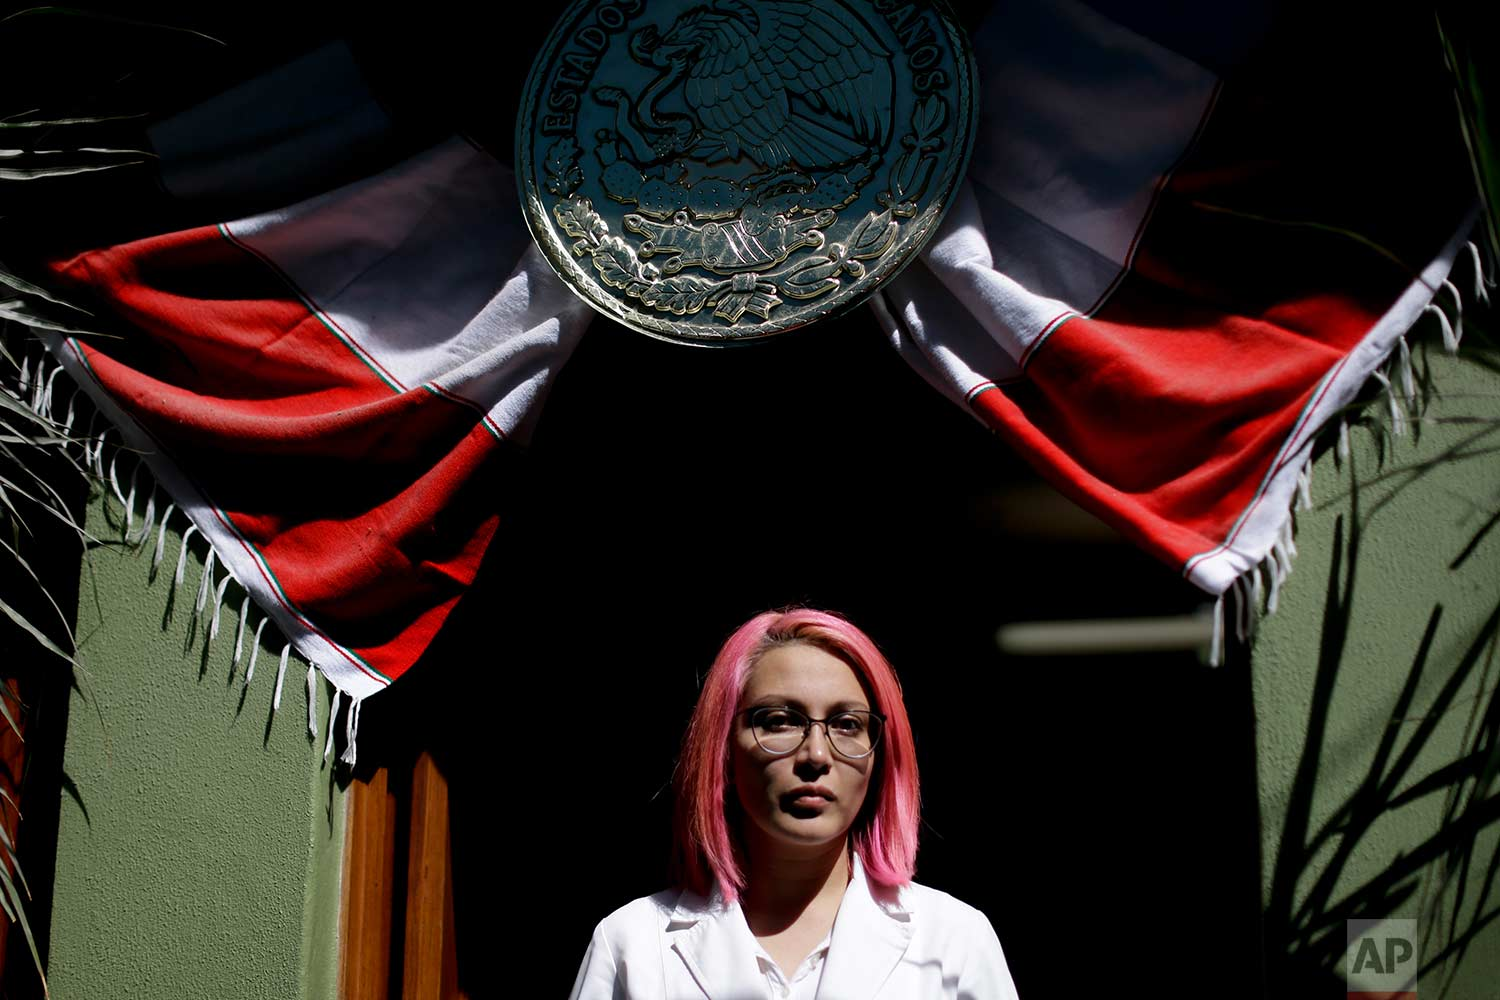 Dr. Karen Pina Fragoso poses for a portrait at the home being used as a safe-house for personal items being pulled from the rubble across the street from an apartment building that collapsed from an earthquake in the Condesa neighborhood of Mexico City,Sept. 22, 2017. (AP Photo/Natacha Pisarenko)